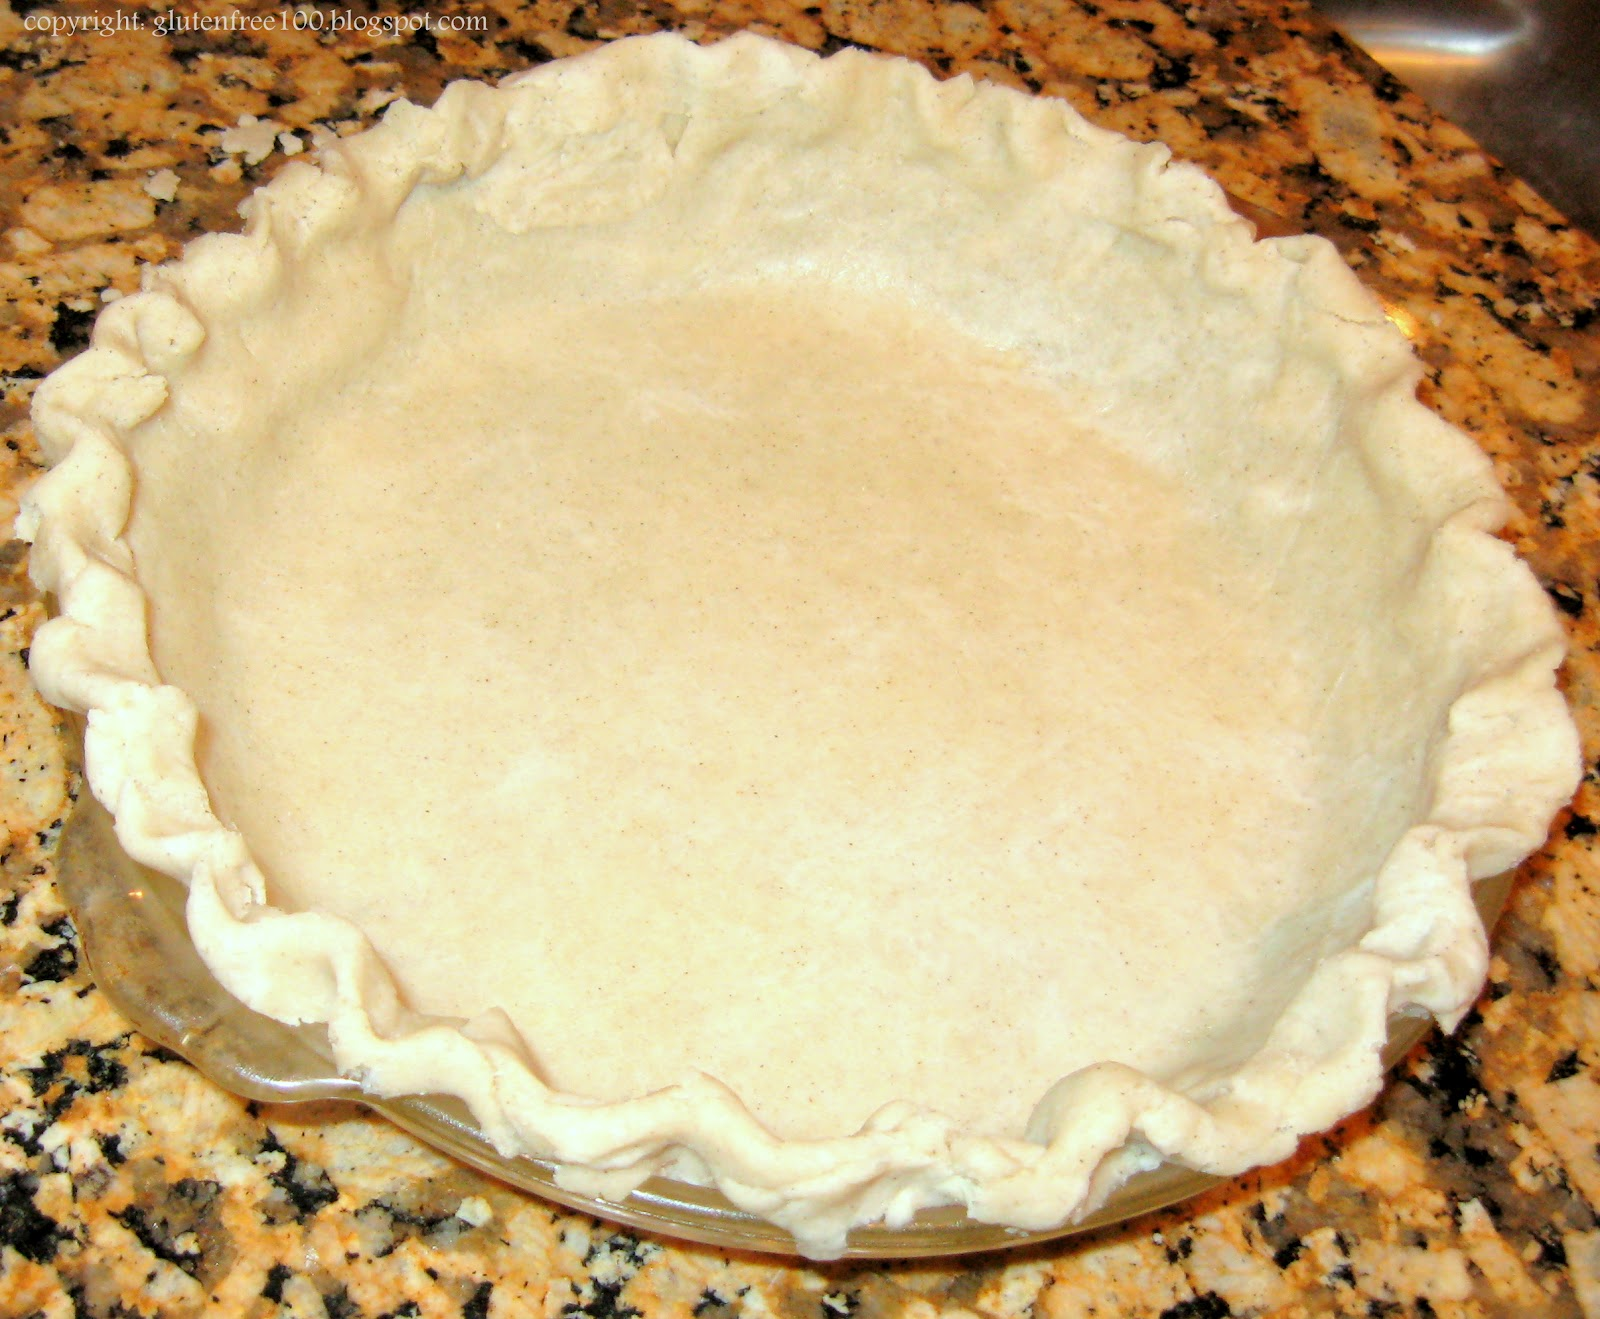 Pie Crust: Flaky, Tender, & Workable